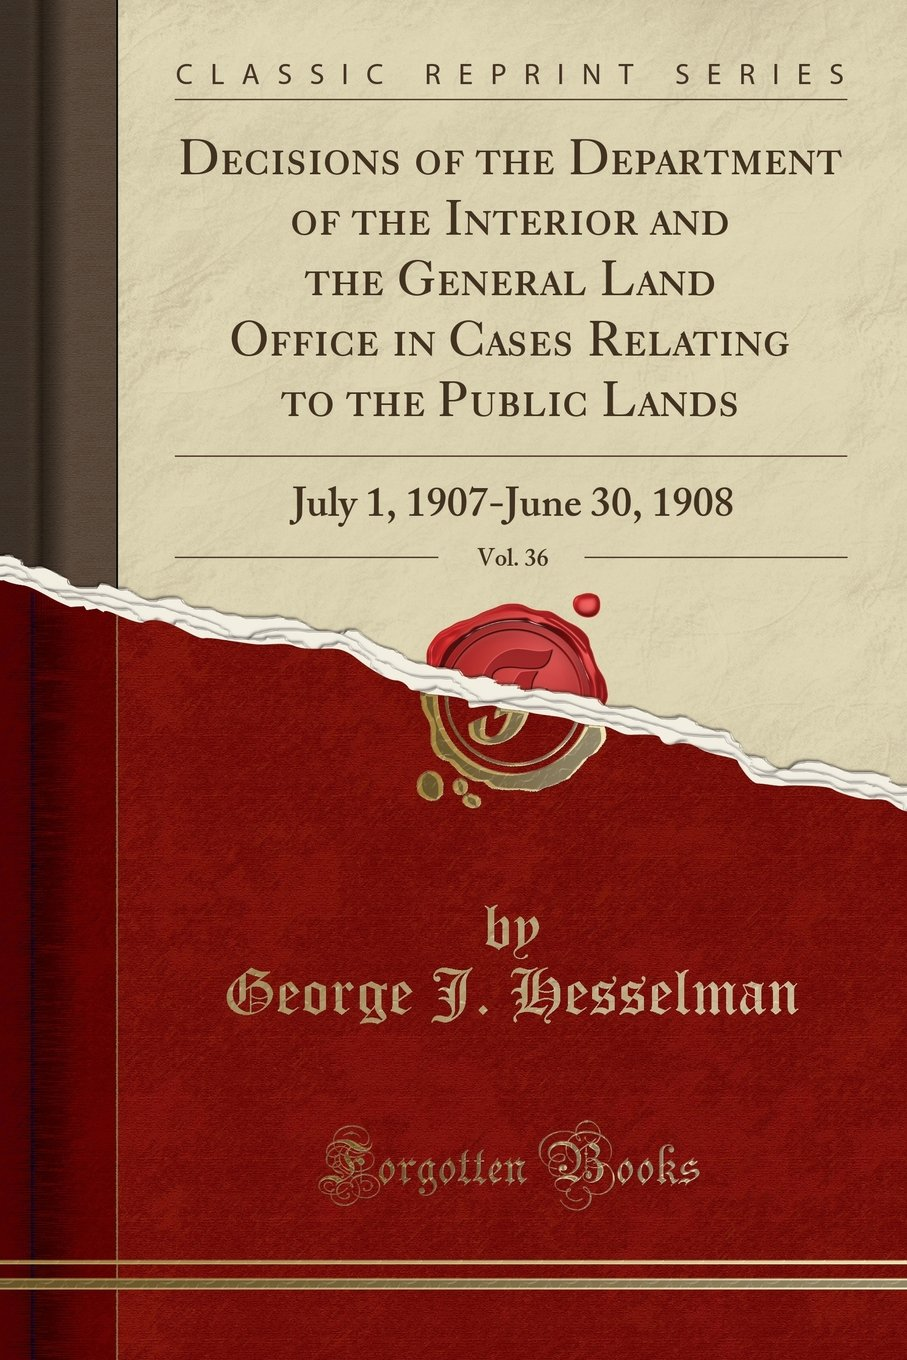 Decisions of the Department of the Interior and the General Land Office in Cases Relating to the Public Lands, Vol. 36: July 1, 1907-June 30, 1908 (Classic Reprint) ebook